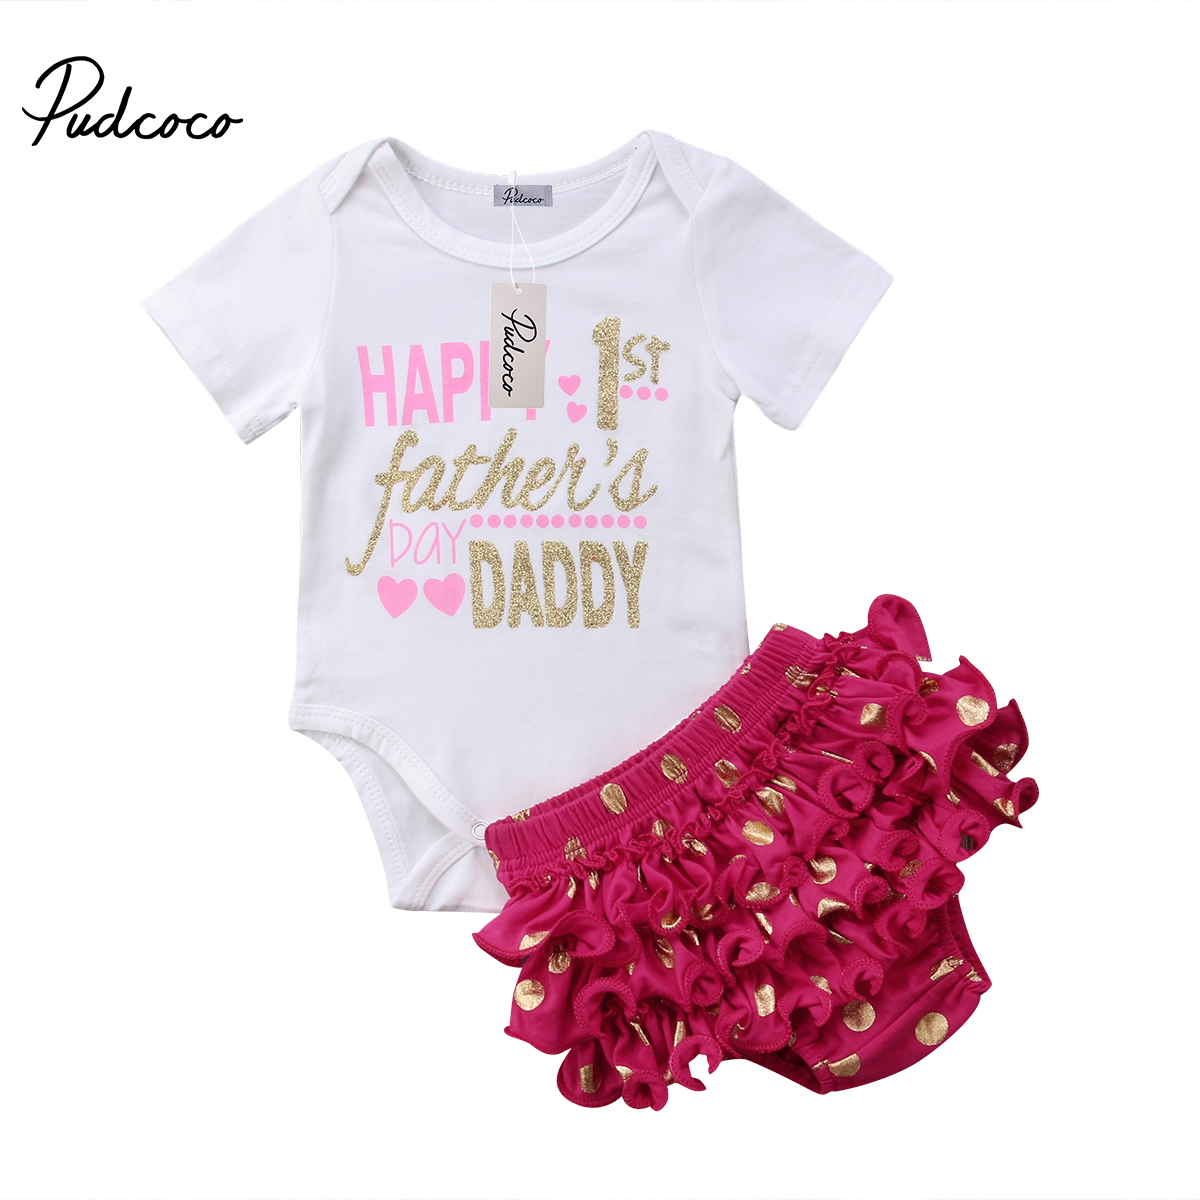 Newborn Toddler Baby Girl Birthdays Summer Outfit Clothes Short Sleeve Romper Tops+Tutu PP Shorts 2PCS Girls Clothes Set